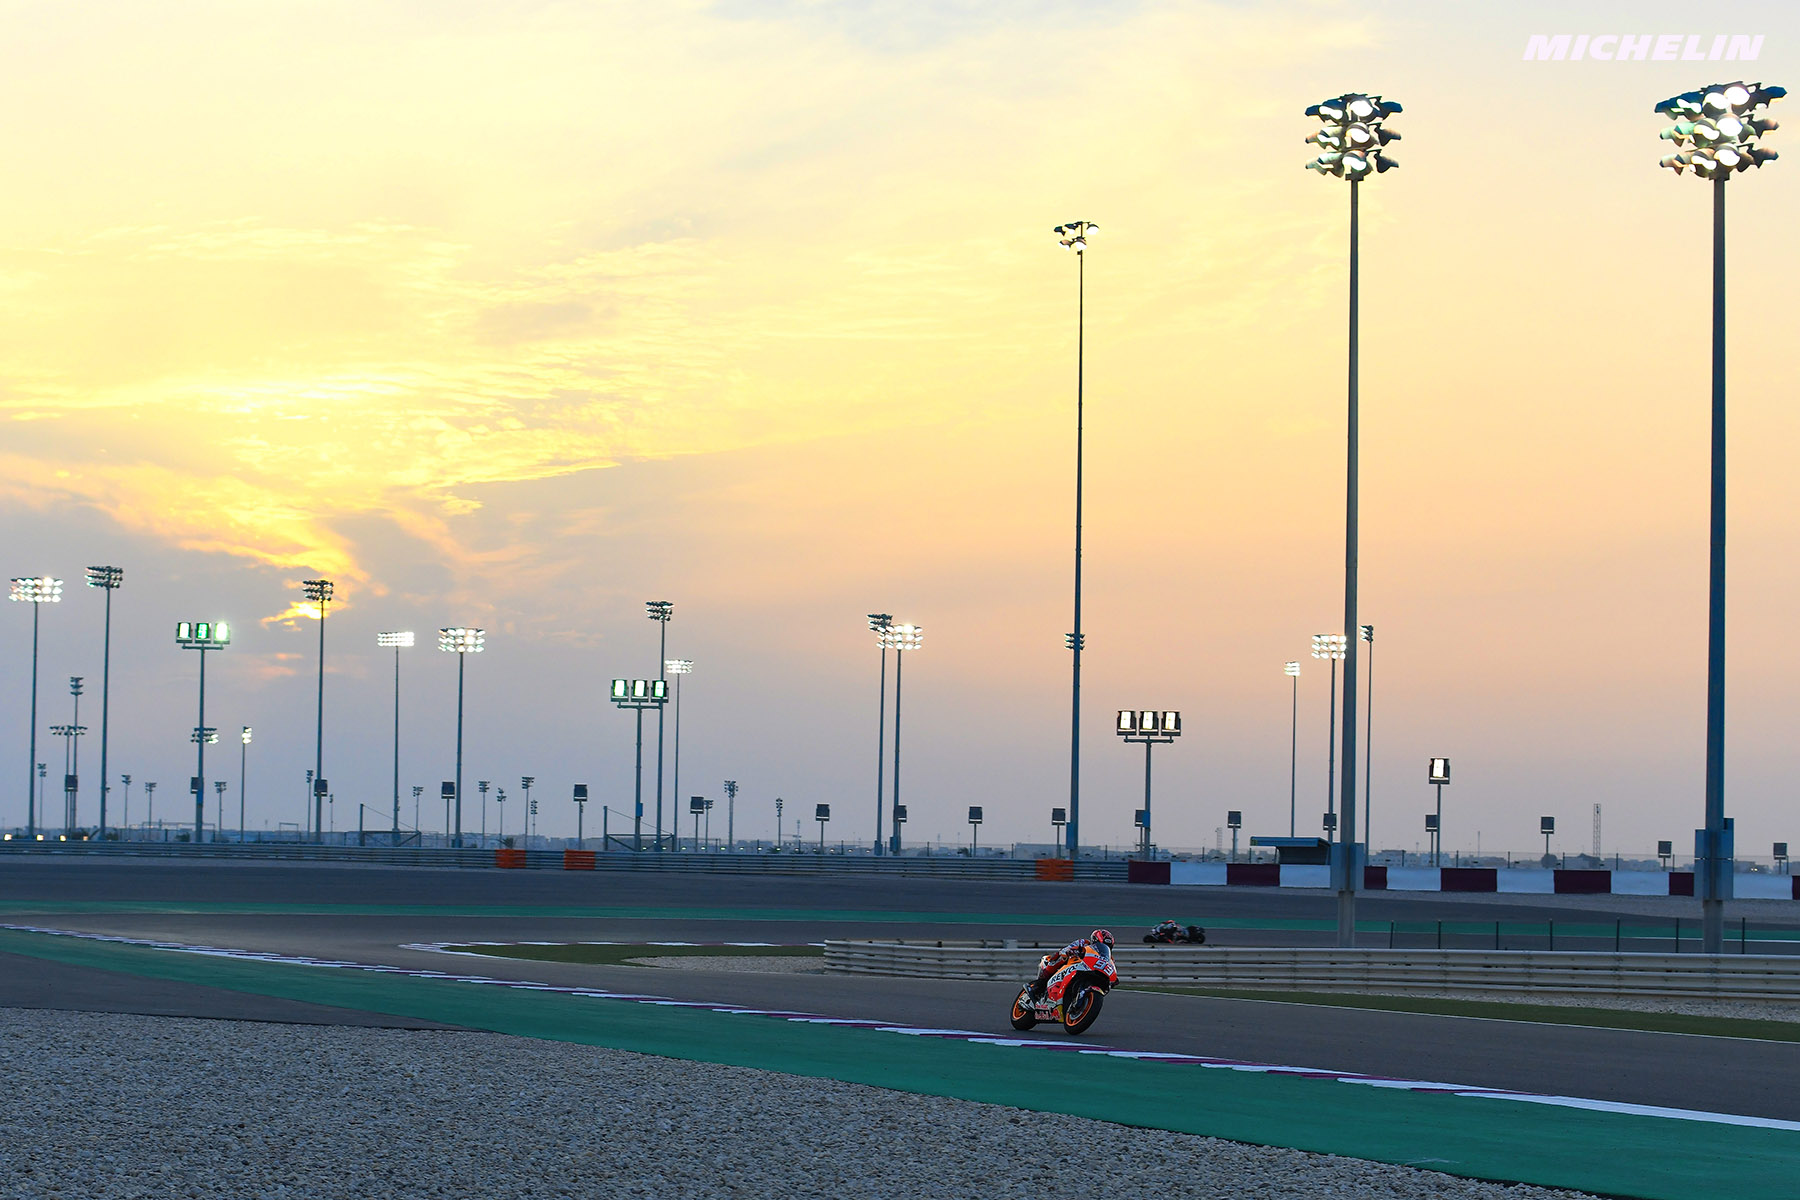 MotoGP: 2018 action to kick off in Qatar